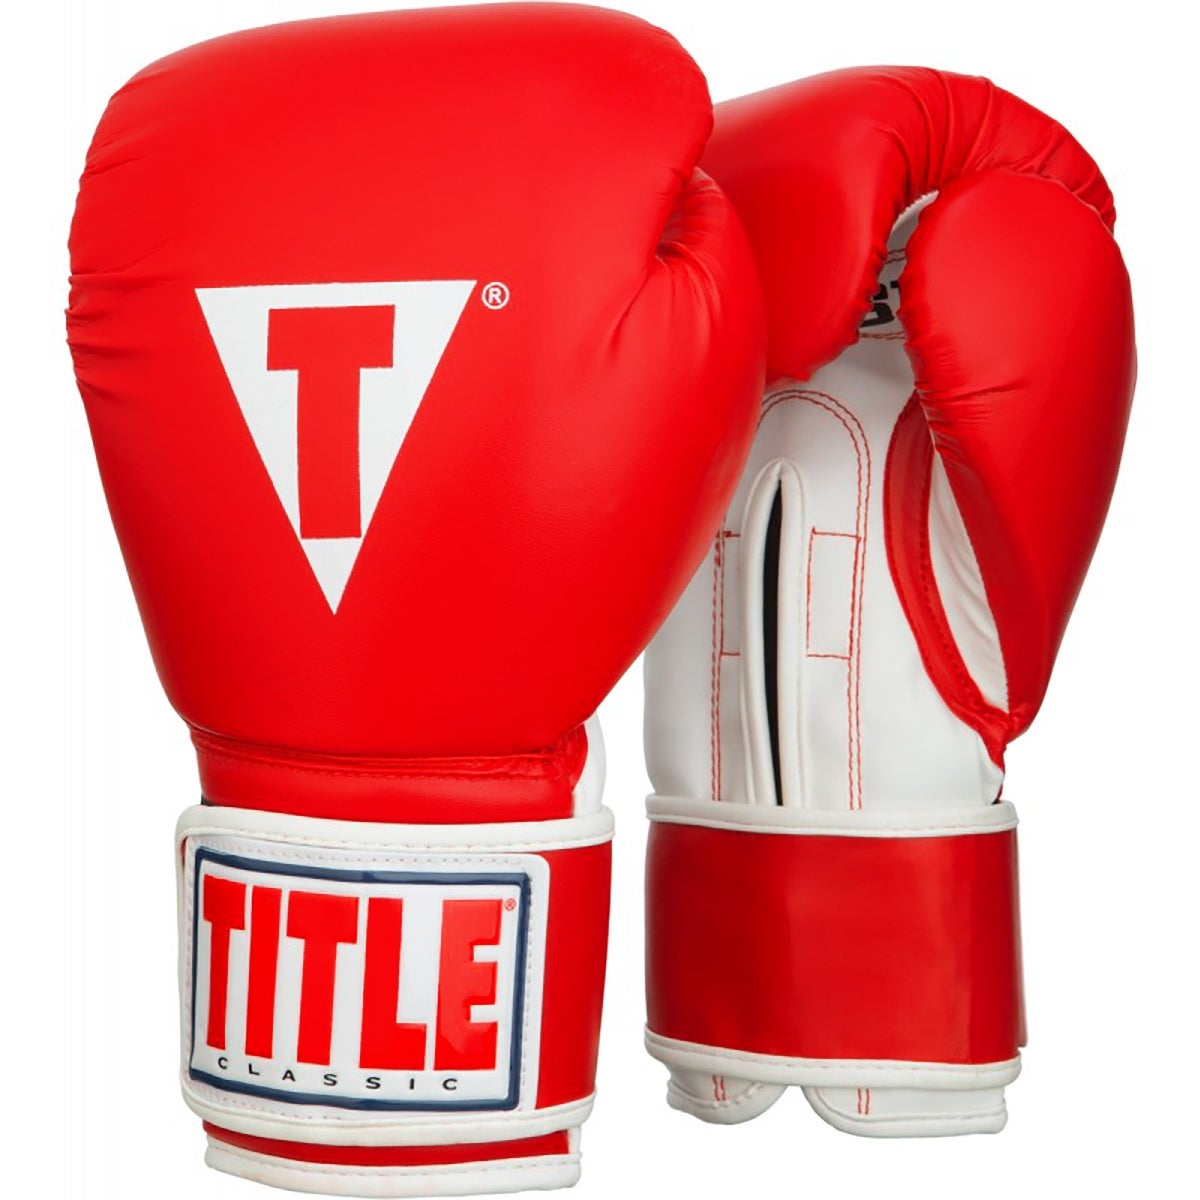 New in Bag Title Classic Boxing Leather Training Gloves Size Large 14oz Red